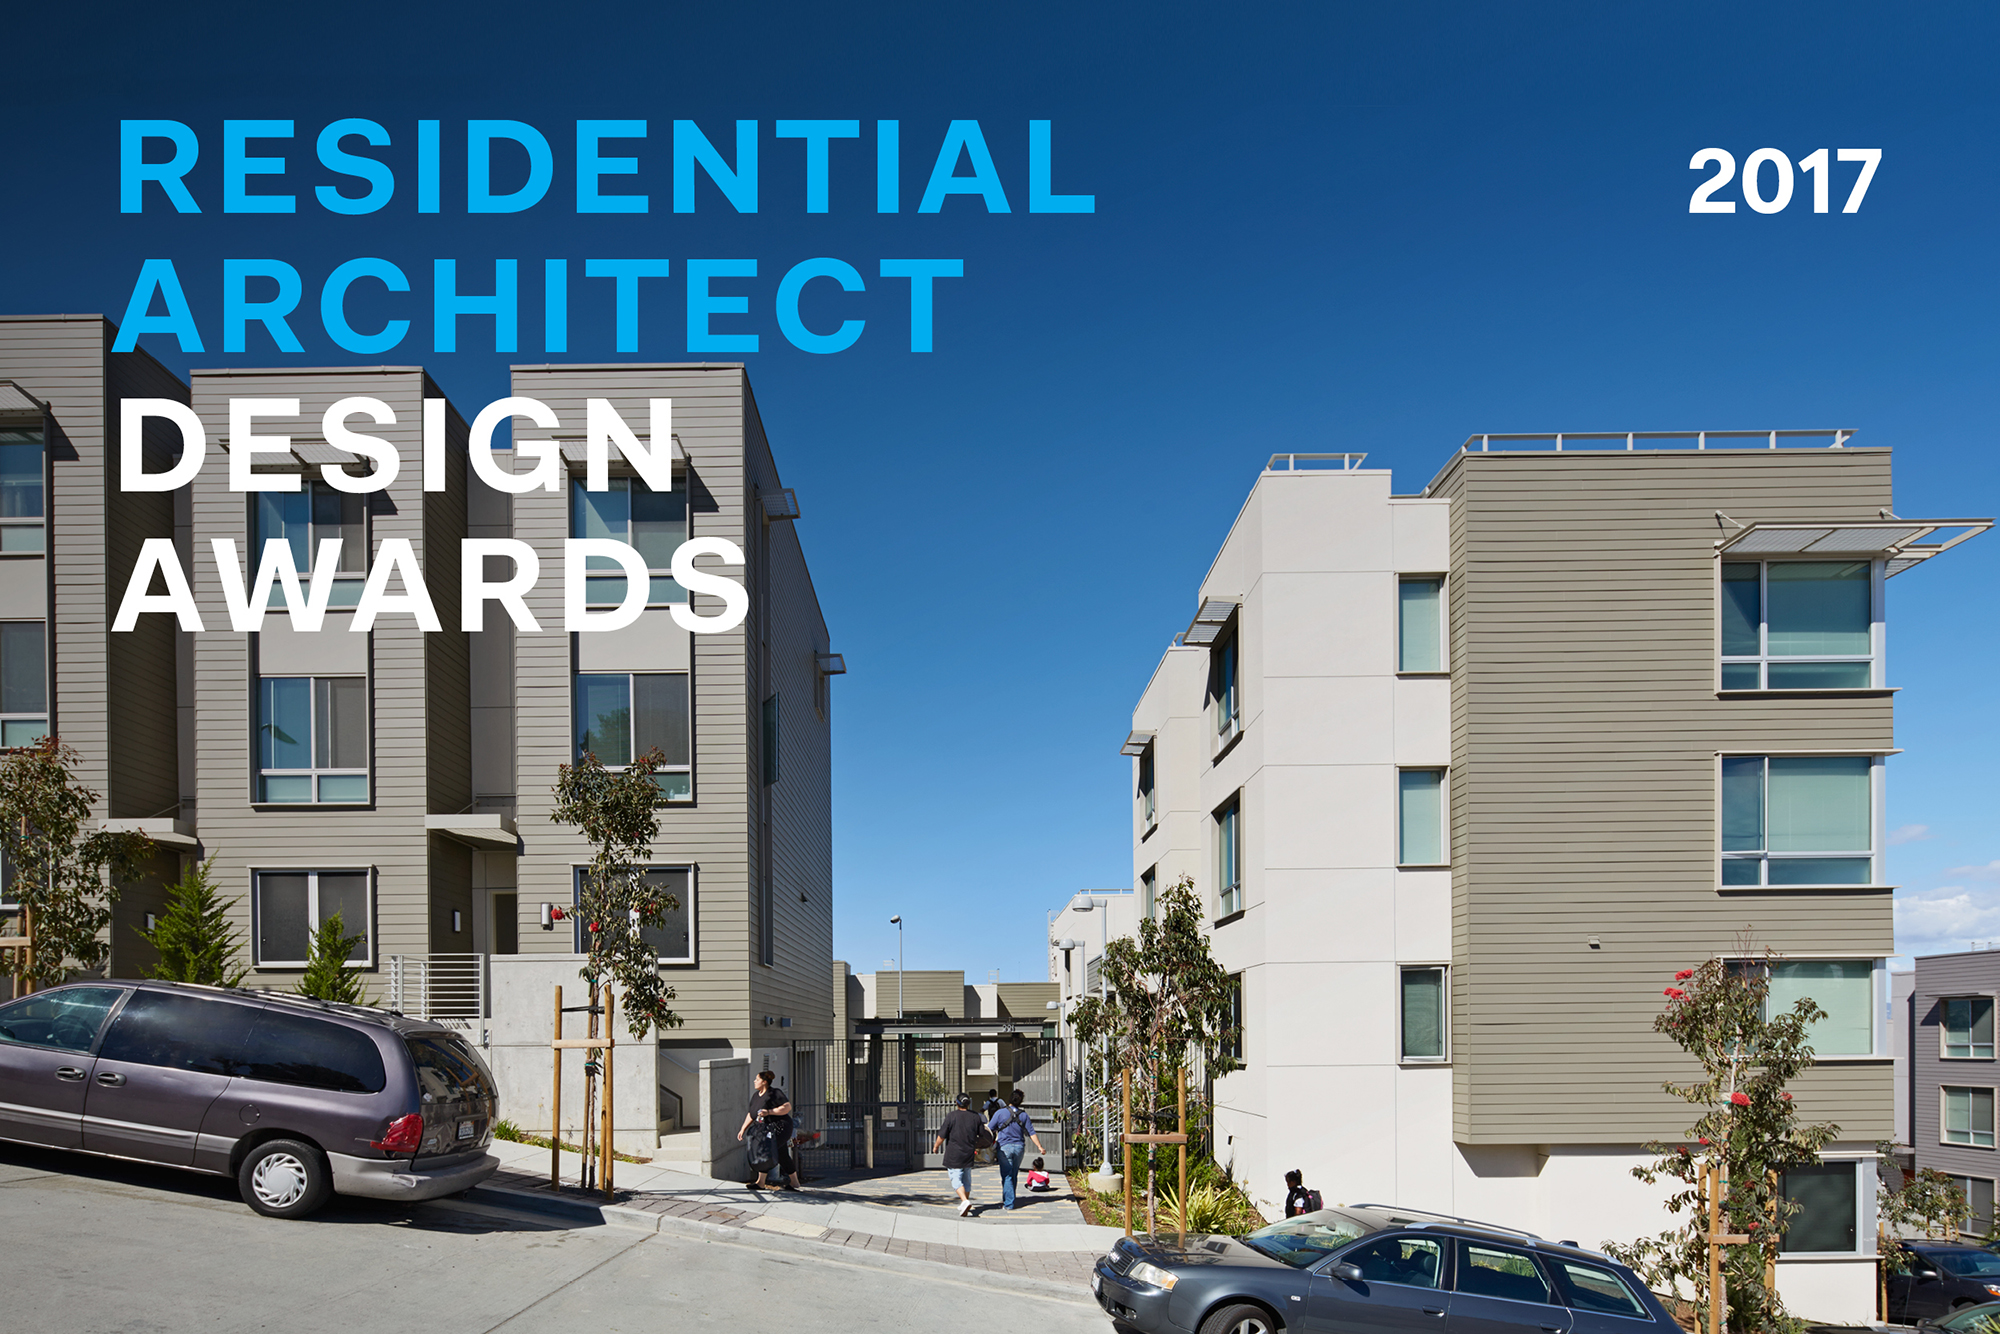 The Winners Of The 2017 Residential Architect Design